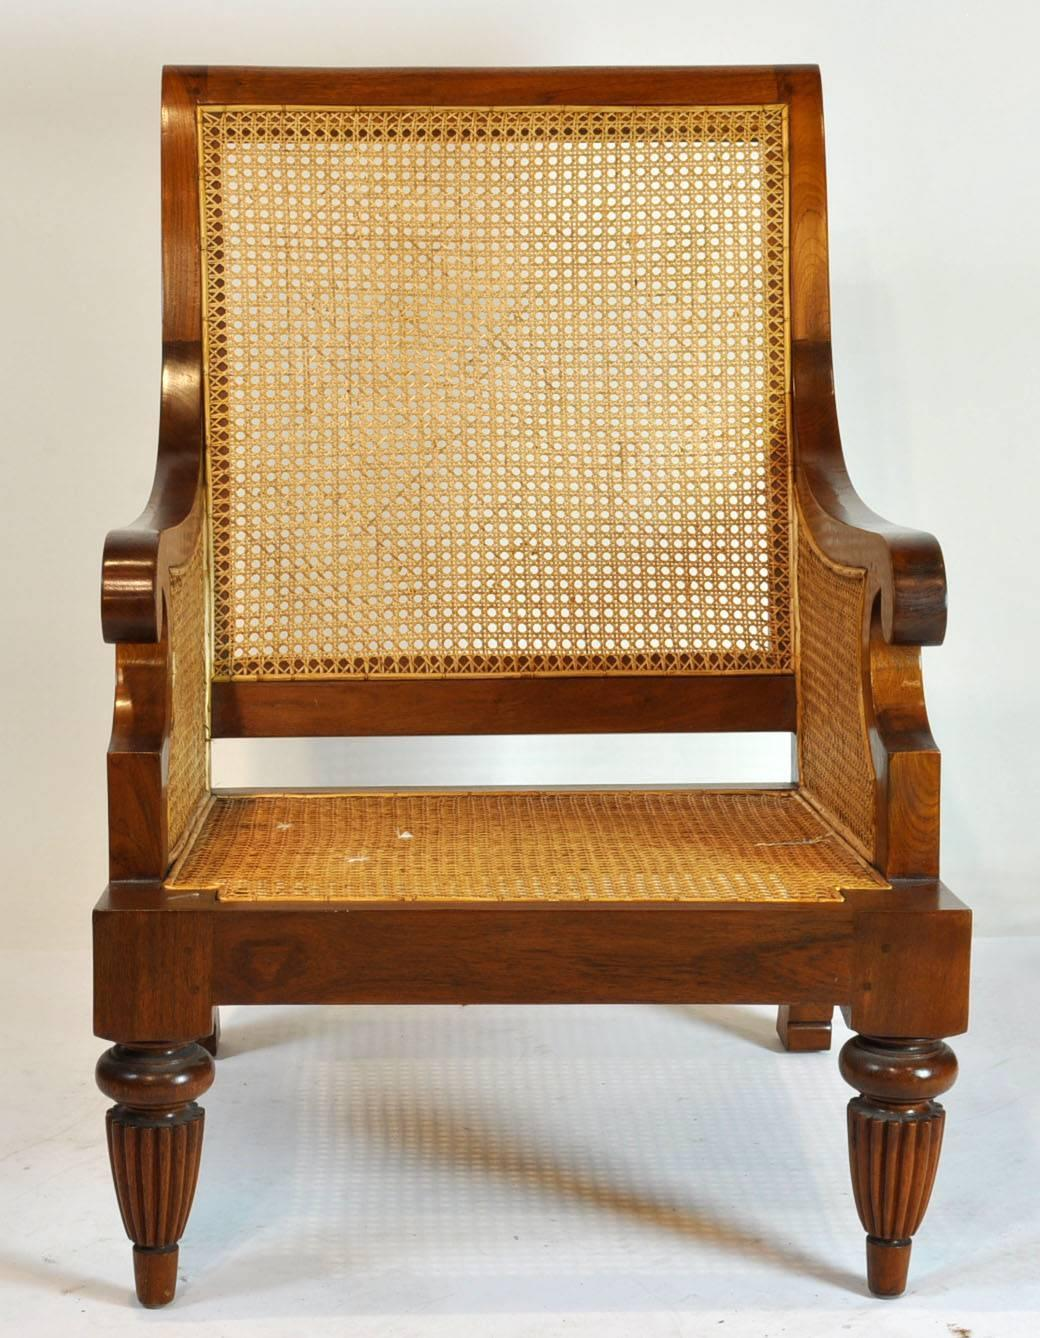 British Colonial Imports Caned Leather Plantation Style